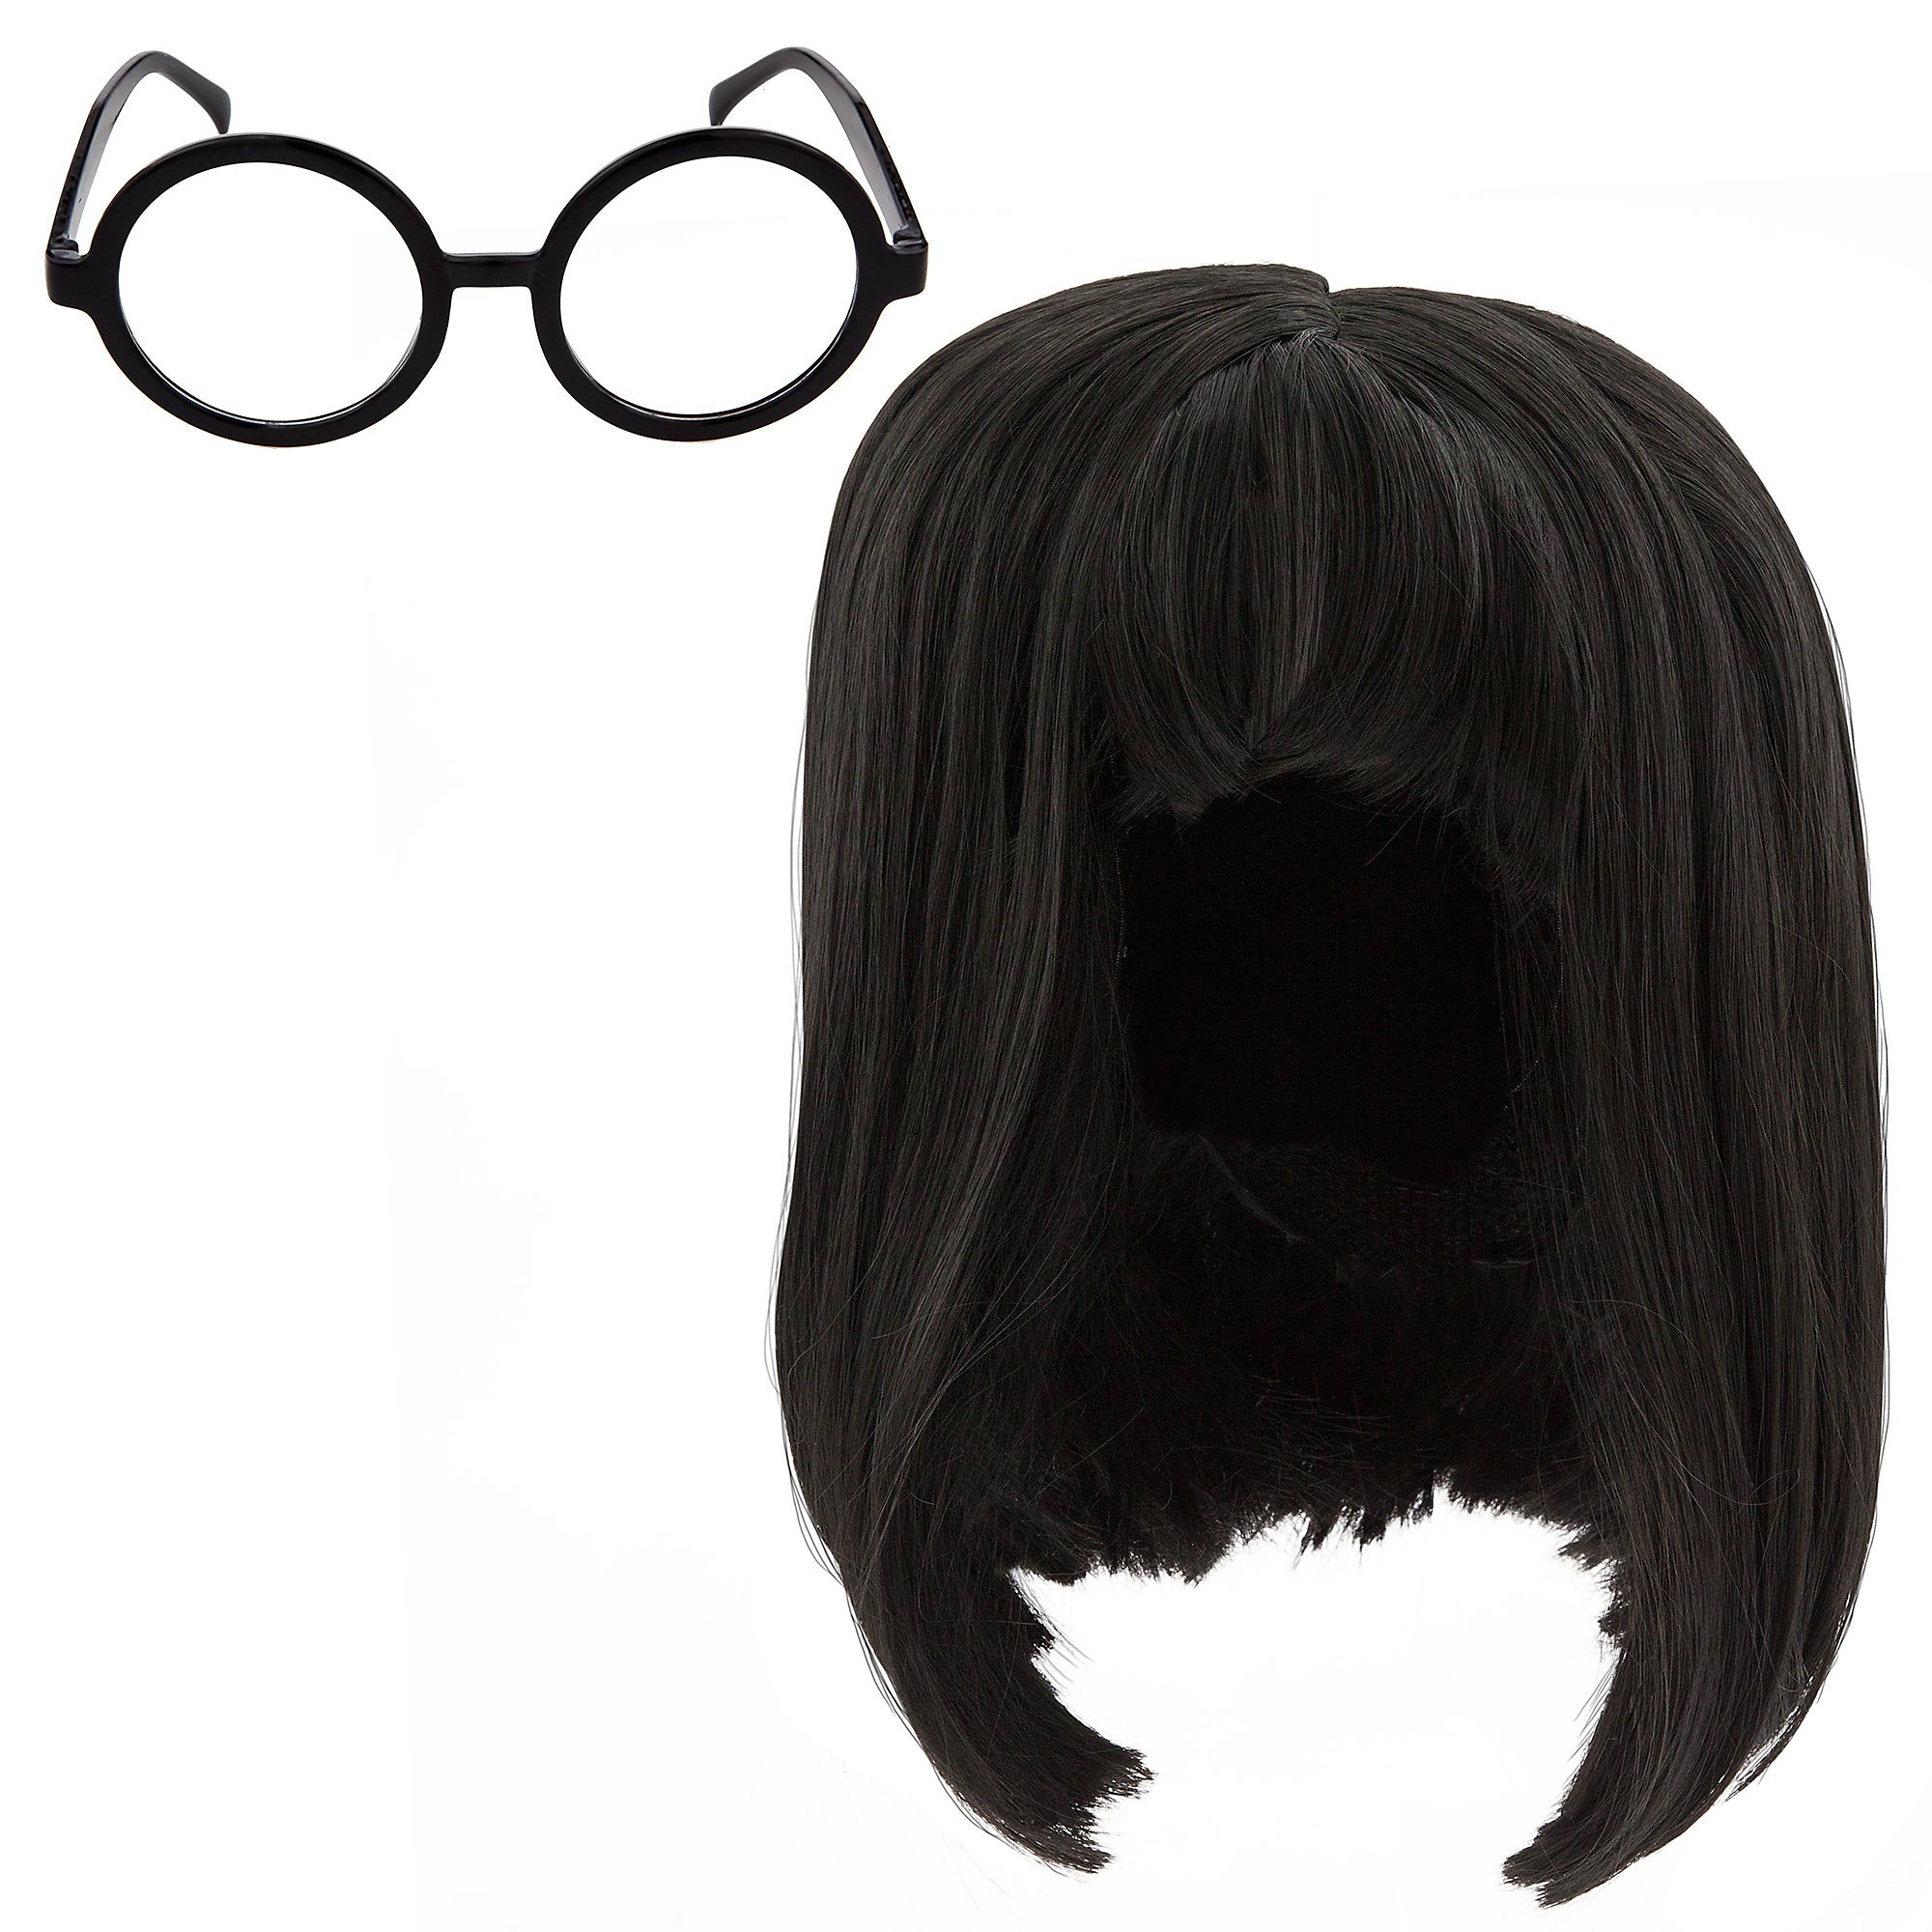 Disney Edna Mode Wig and Eyeglasses Set for Adults - Incredibles 2 Multi